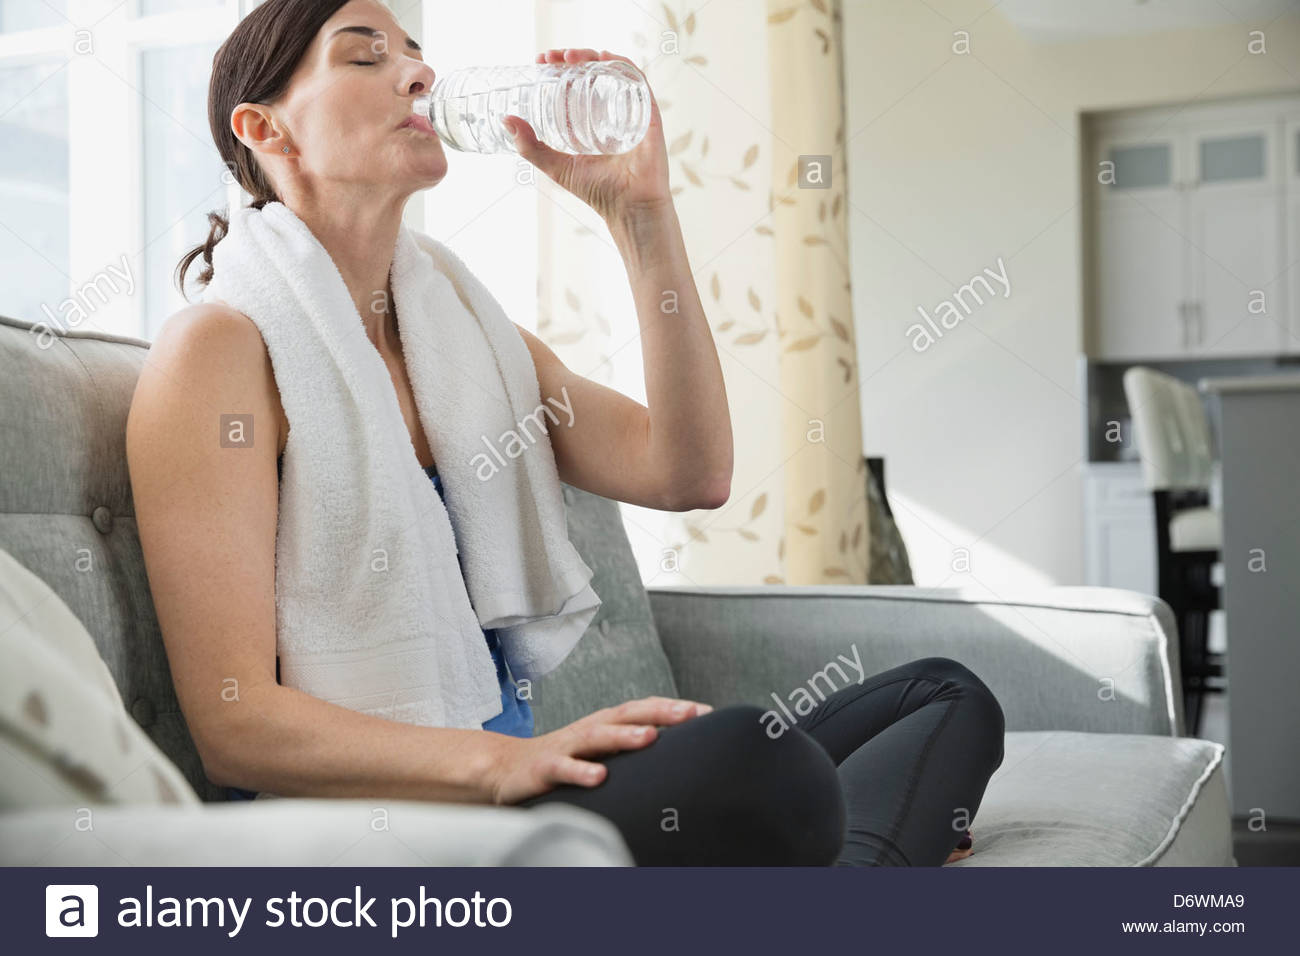 Mature woman drinking water from bottle on sofa - Stock Image